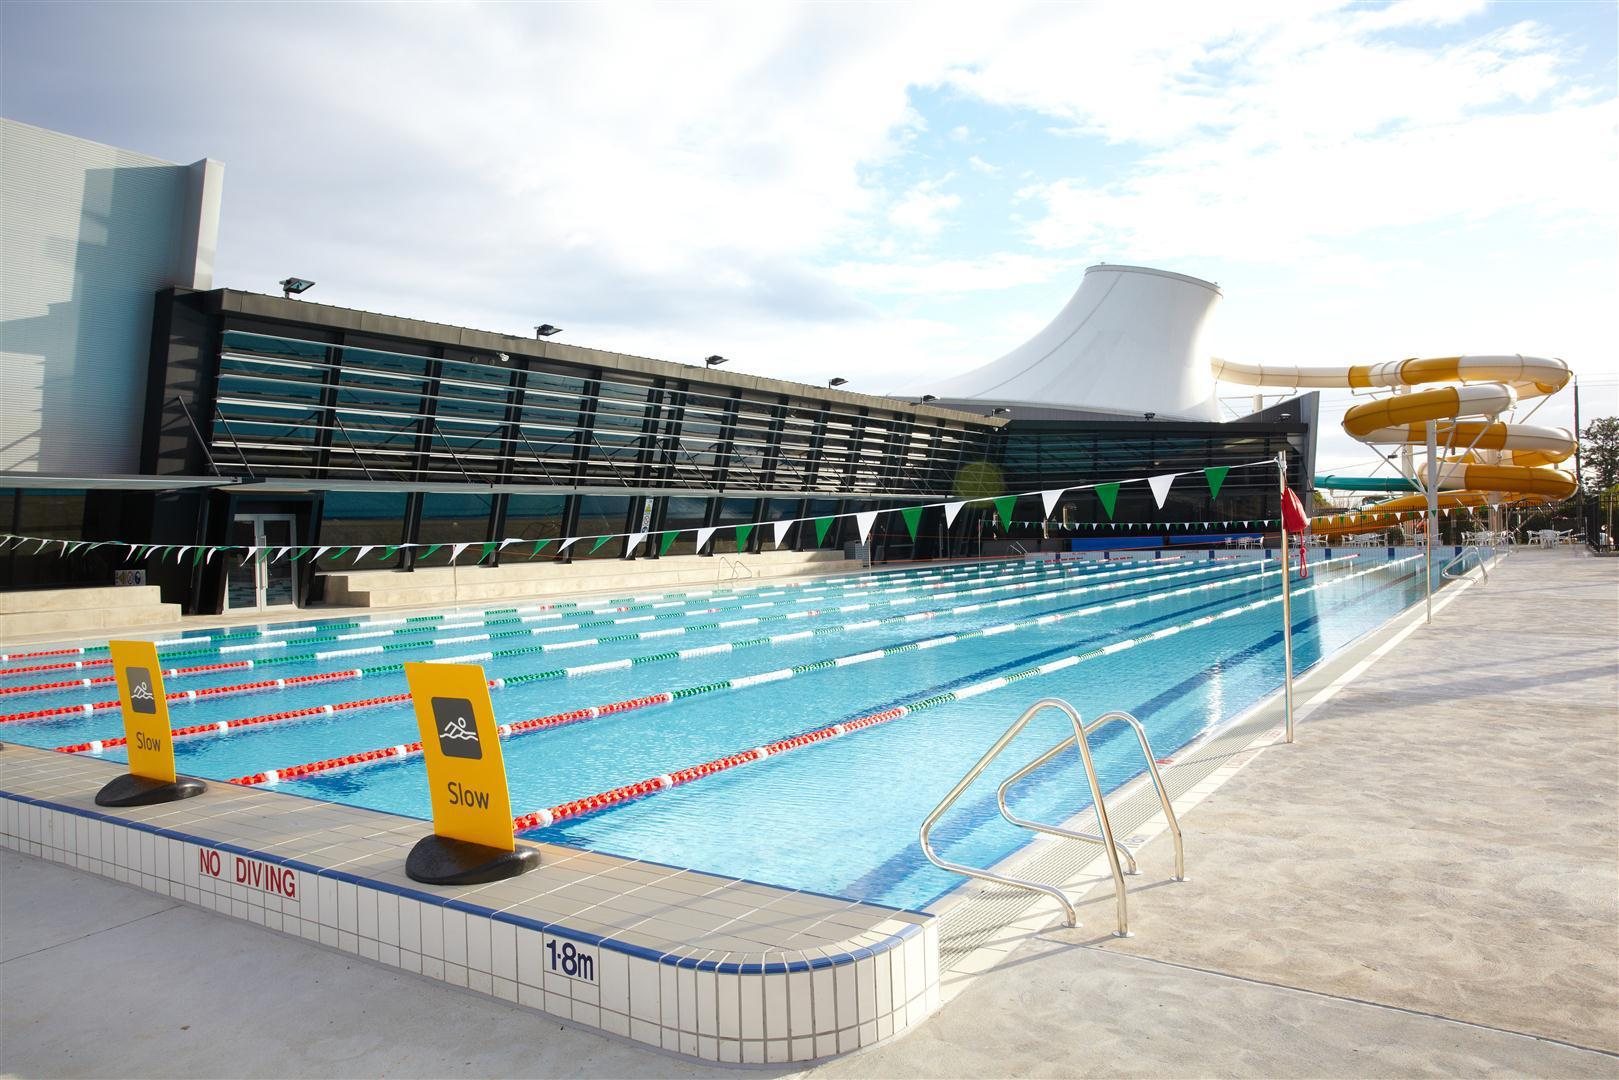 Glen eira sports and aquatic centre melbourne by a camera in melbourne for East boundary road swimming pool